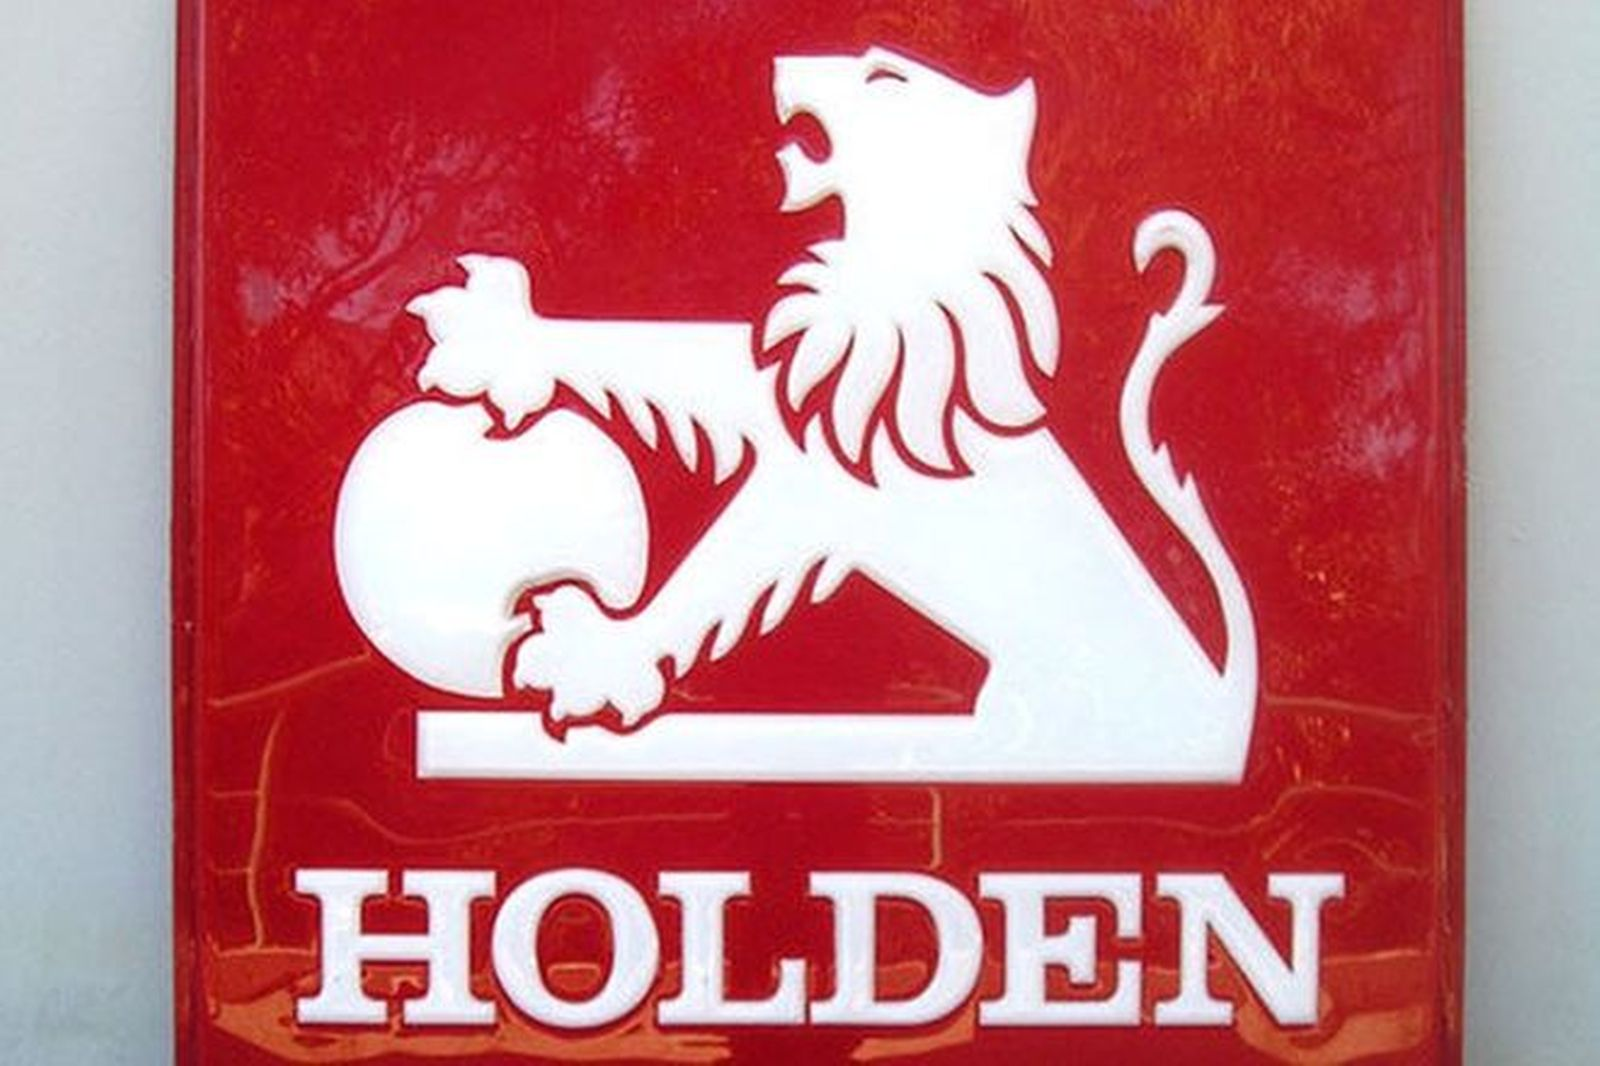 Signs x 2 - Large 'back to back' Holden in perspex ( 1.1 m x 1.1 m)